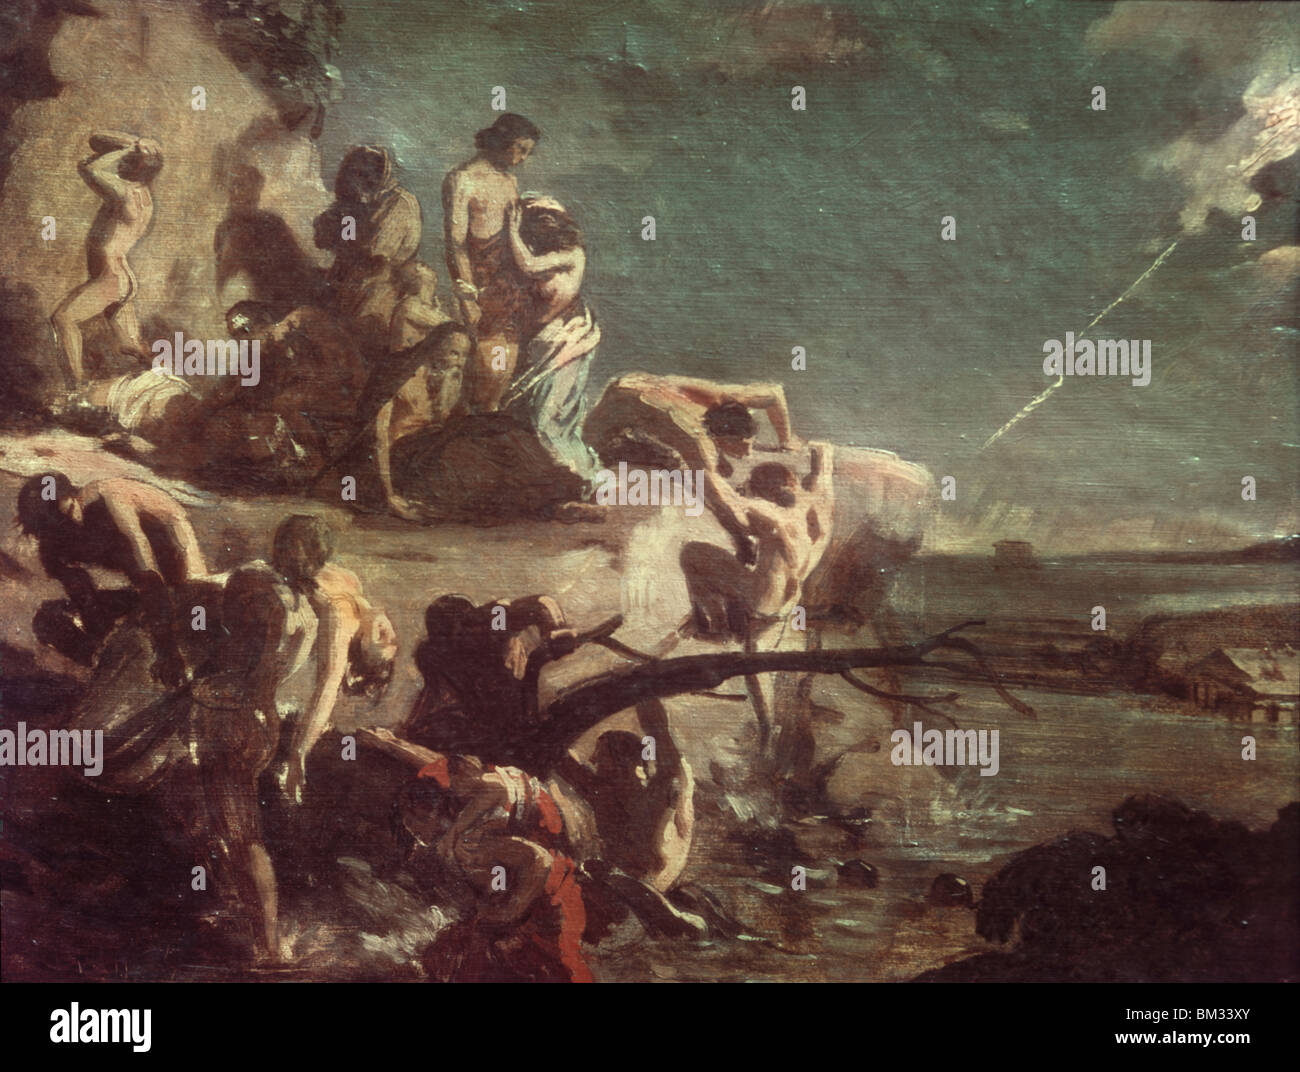 The Deluge by Theodore Gericault, (1791-1824) - Stock Image